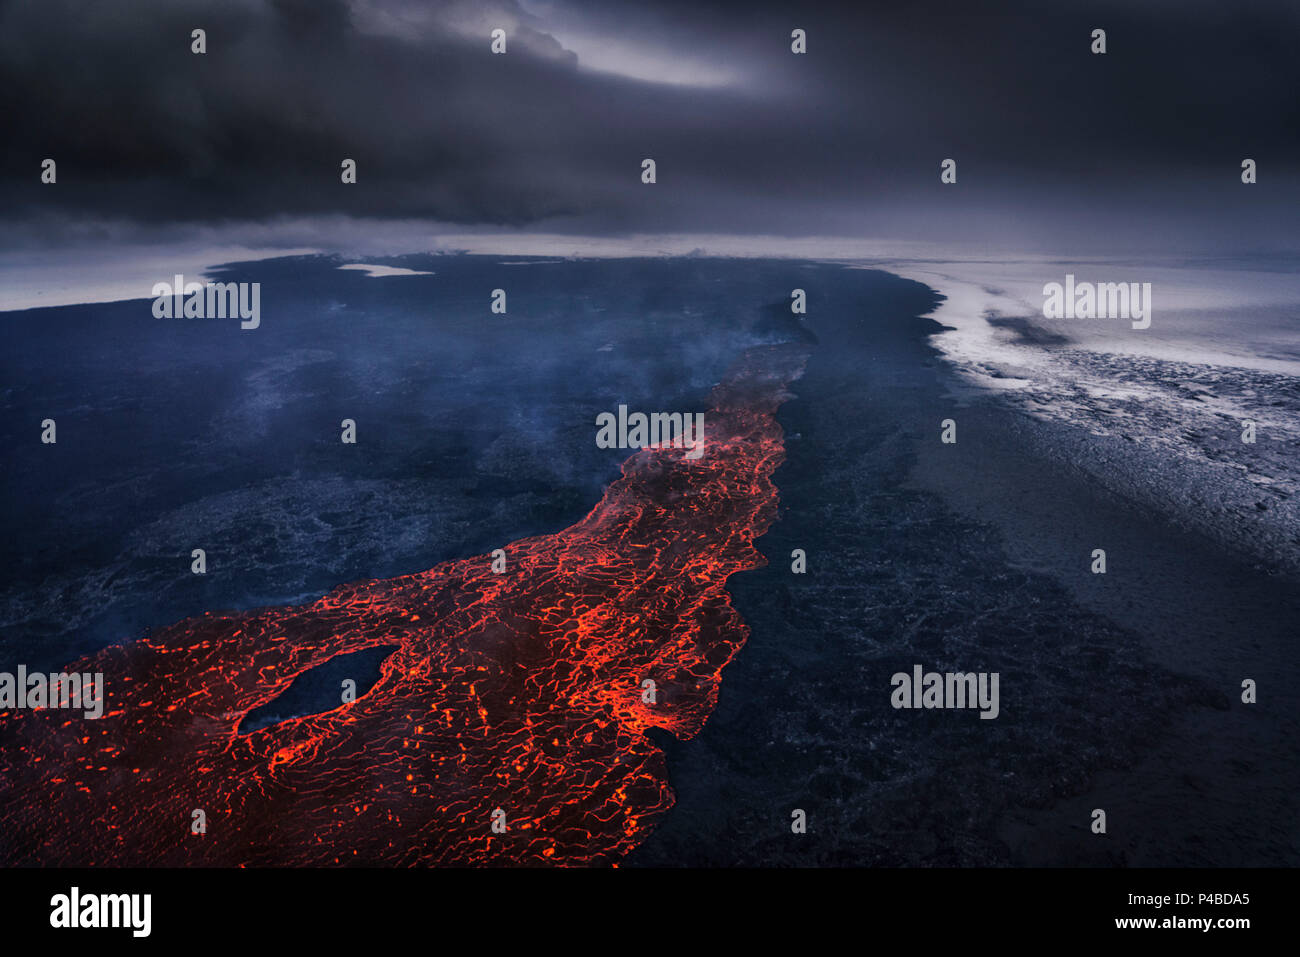 Aerial view of lava and plumes. August 29, 2014 a fissure eruption started in Holuhraun at the northern end of a magma intrusion, which had moved progressively north, from the Bardarbunga volcano. Bardarbunga is a stratovolcano located under Vatnajokull, Iceland's most extensive glacier. Picture Date-October 30, 2014 - Stock Image